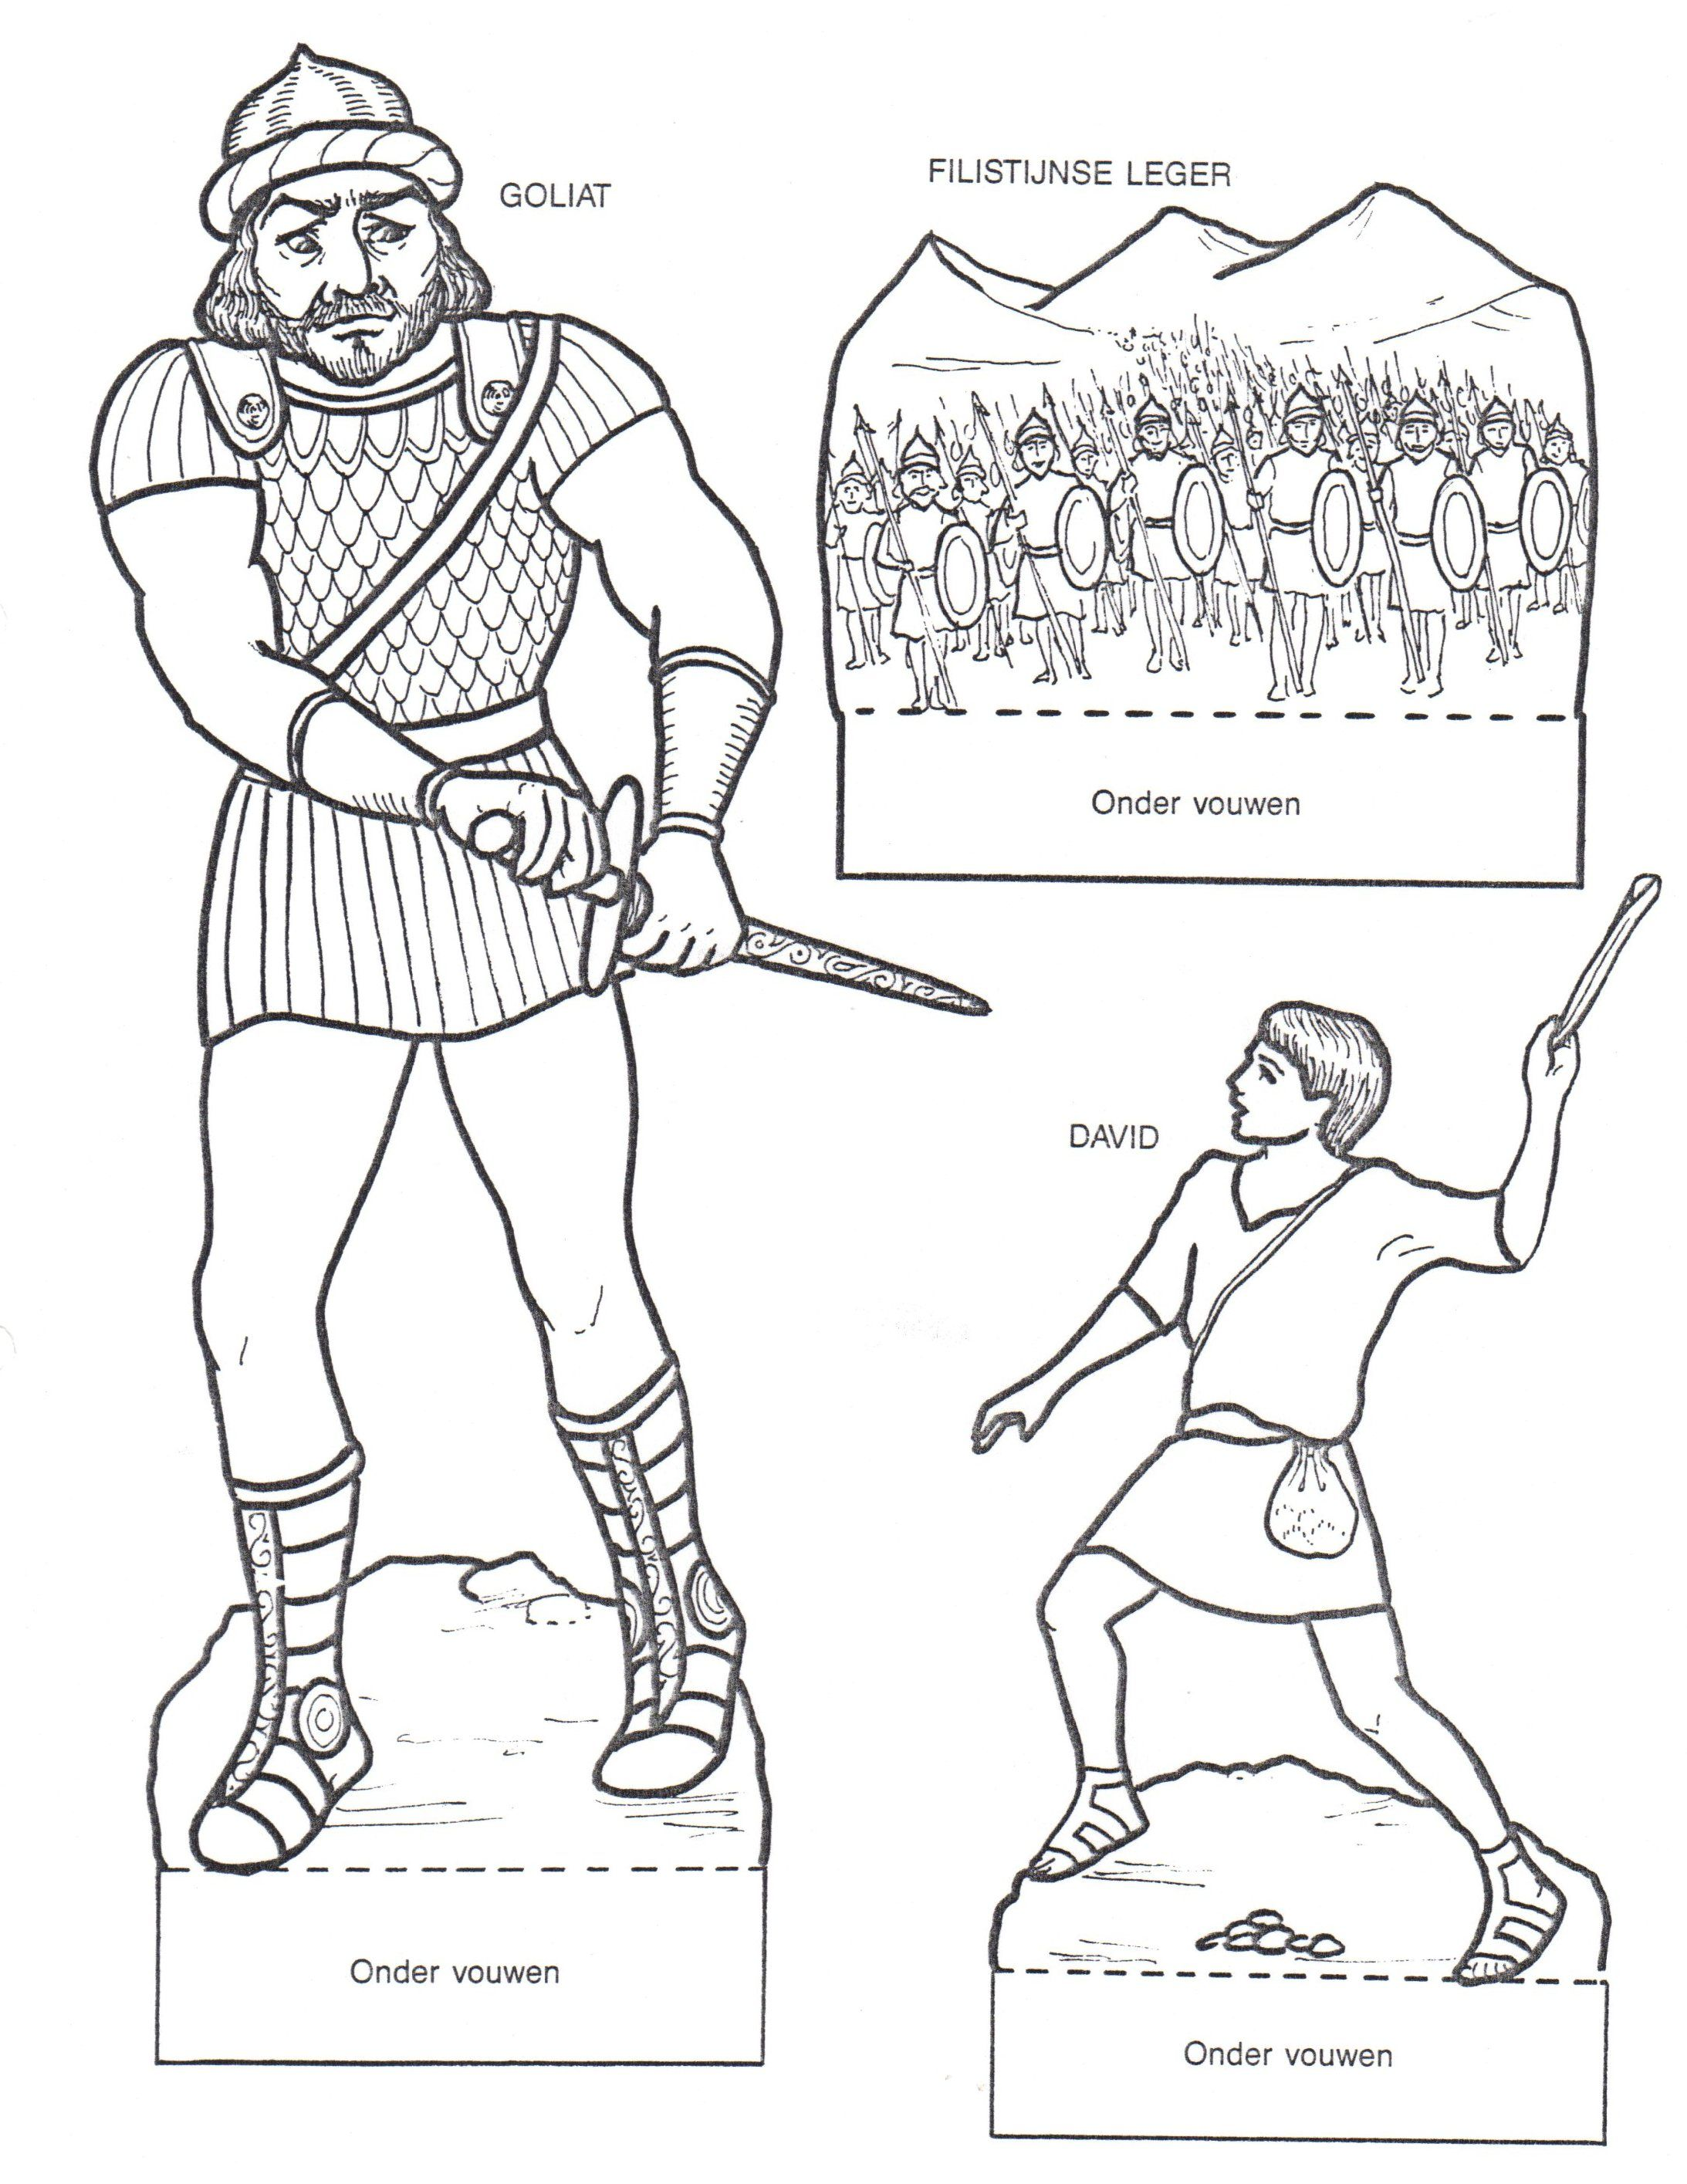 picture relating to David and Goliath Printable Story referred to as David and Goliath printables Previous Testomony - David David